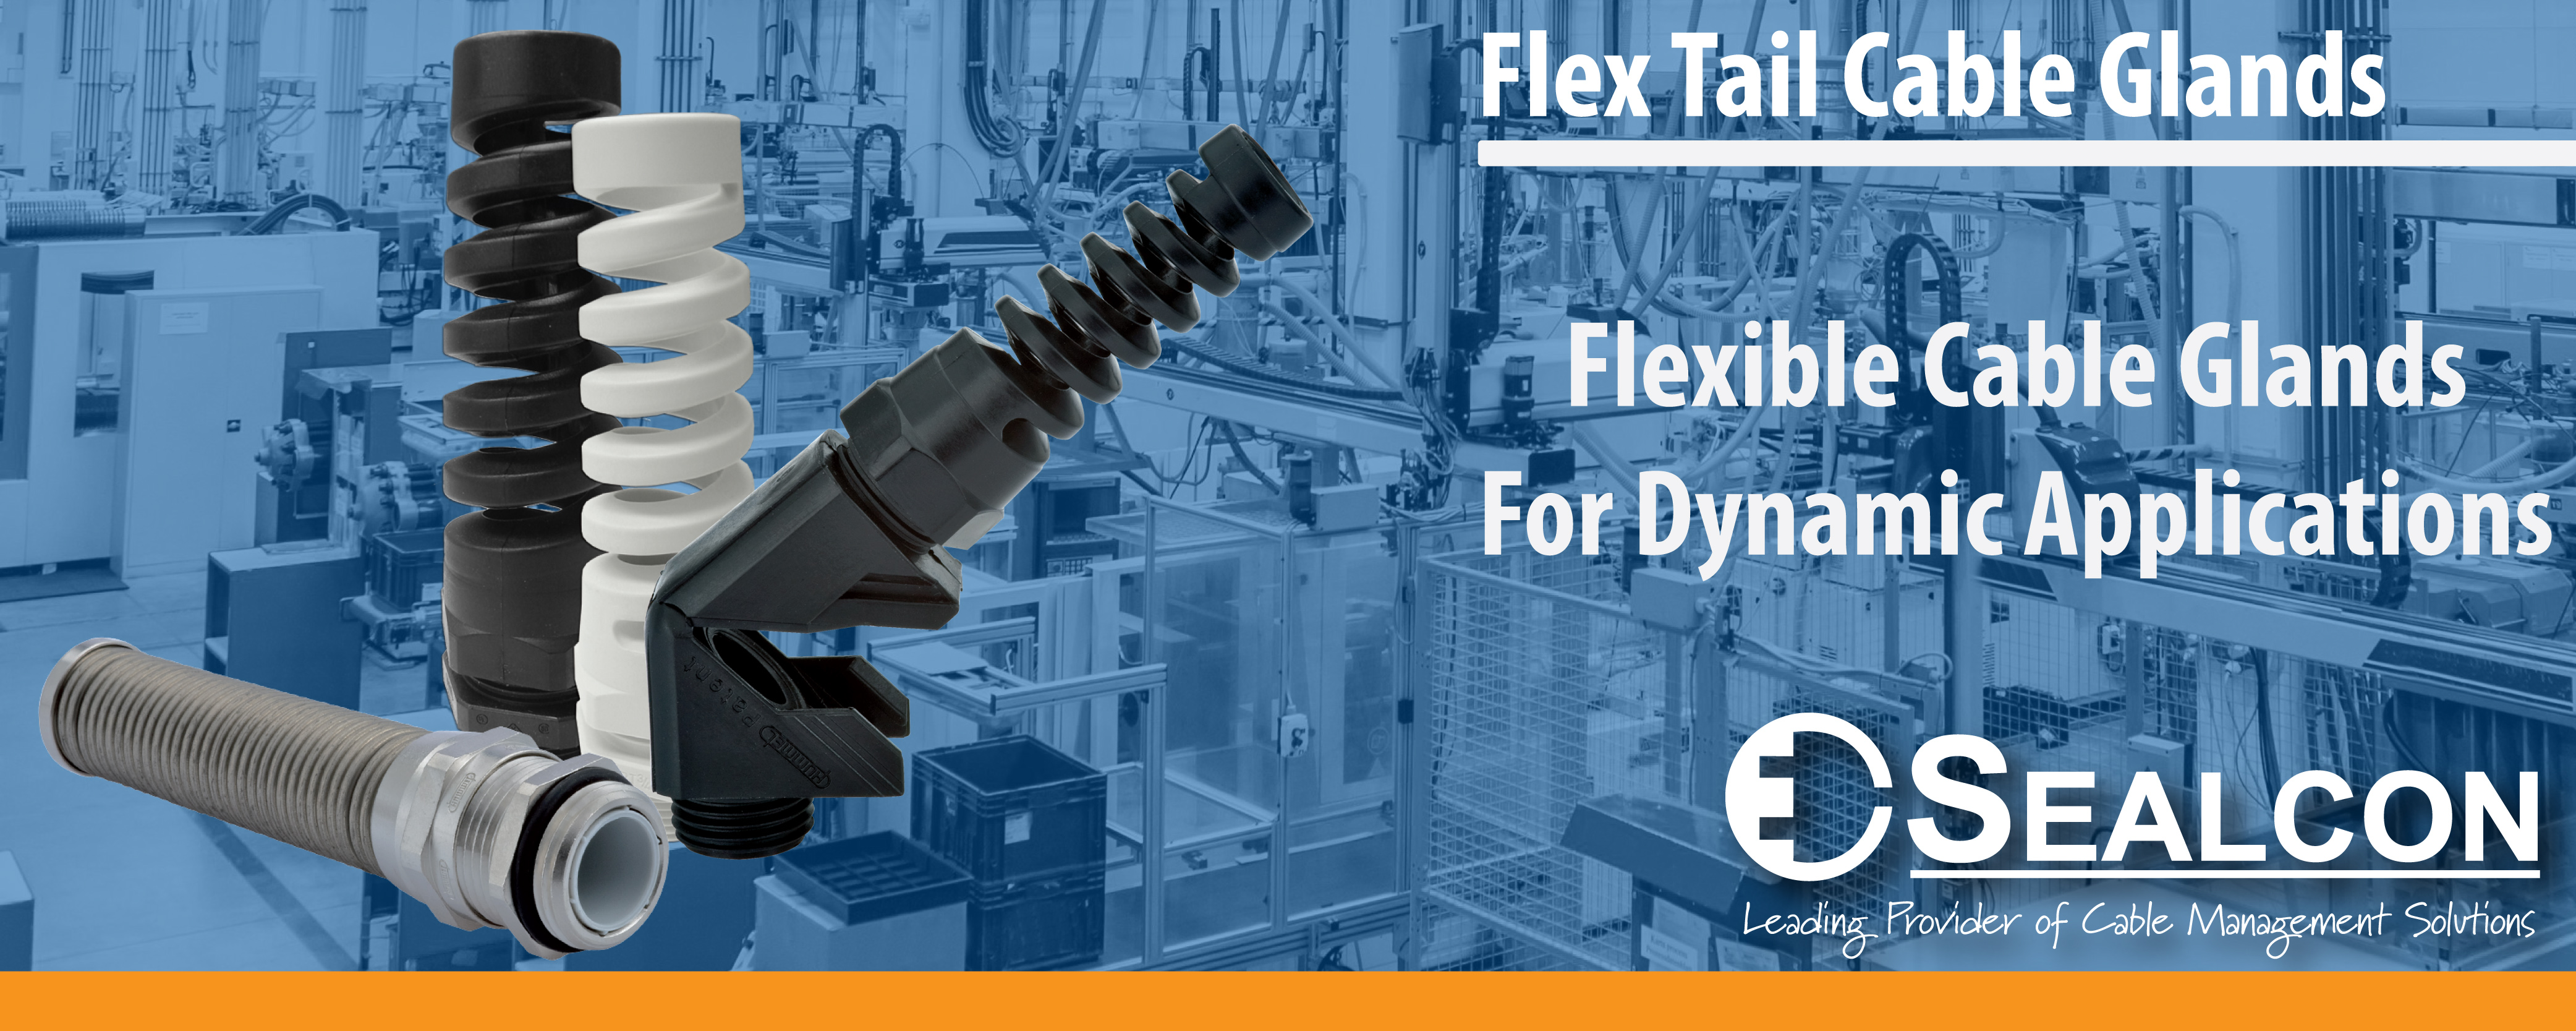 Sealcon Blog Strain Relief Fittings Connectors Enclosures Vortex Flex Resources All About Flexible Circuits Dynamic Applications Require Components That Allow For Free Movement Standard Dome Cable Glands Are Great Securely Holding Wires In Place